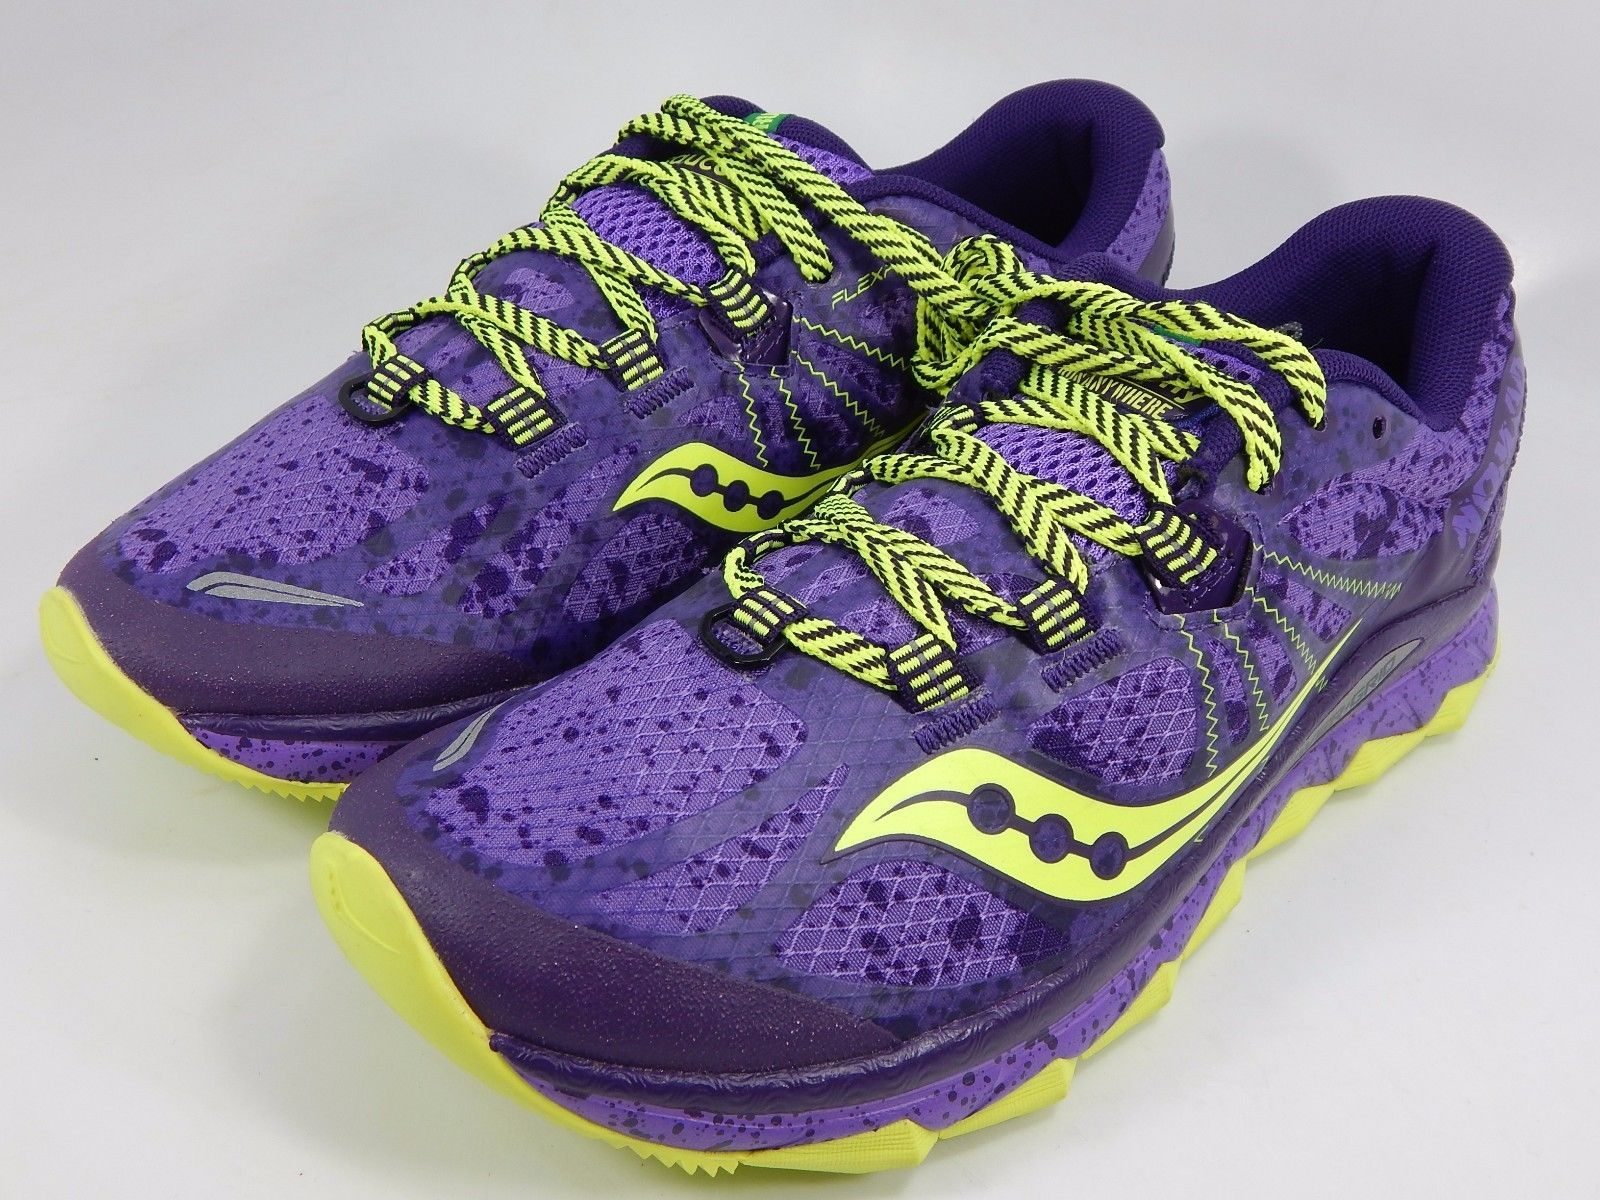 Saucony Nomad TR Women's Trail Running Shoes Sz US 8 M (B) EU 39 Purple S10287-4